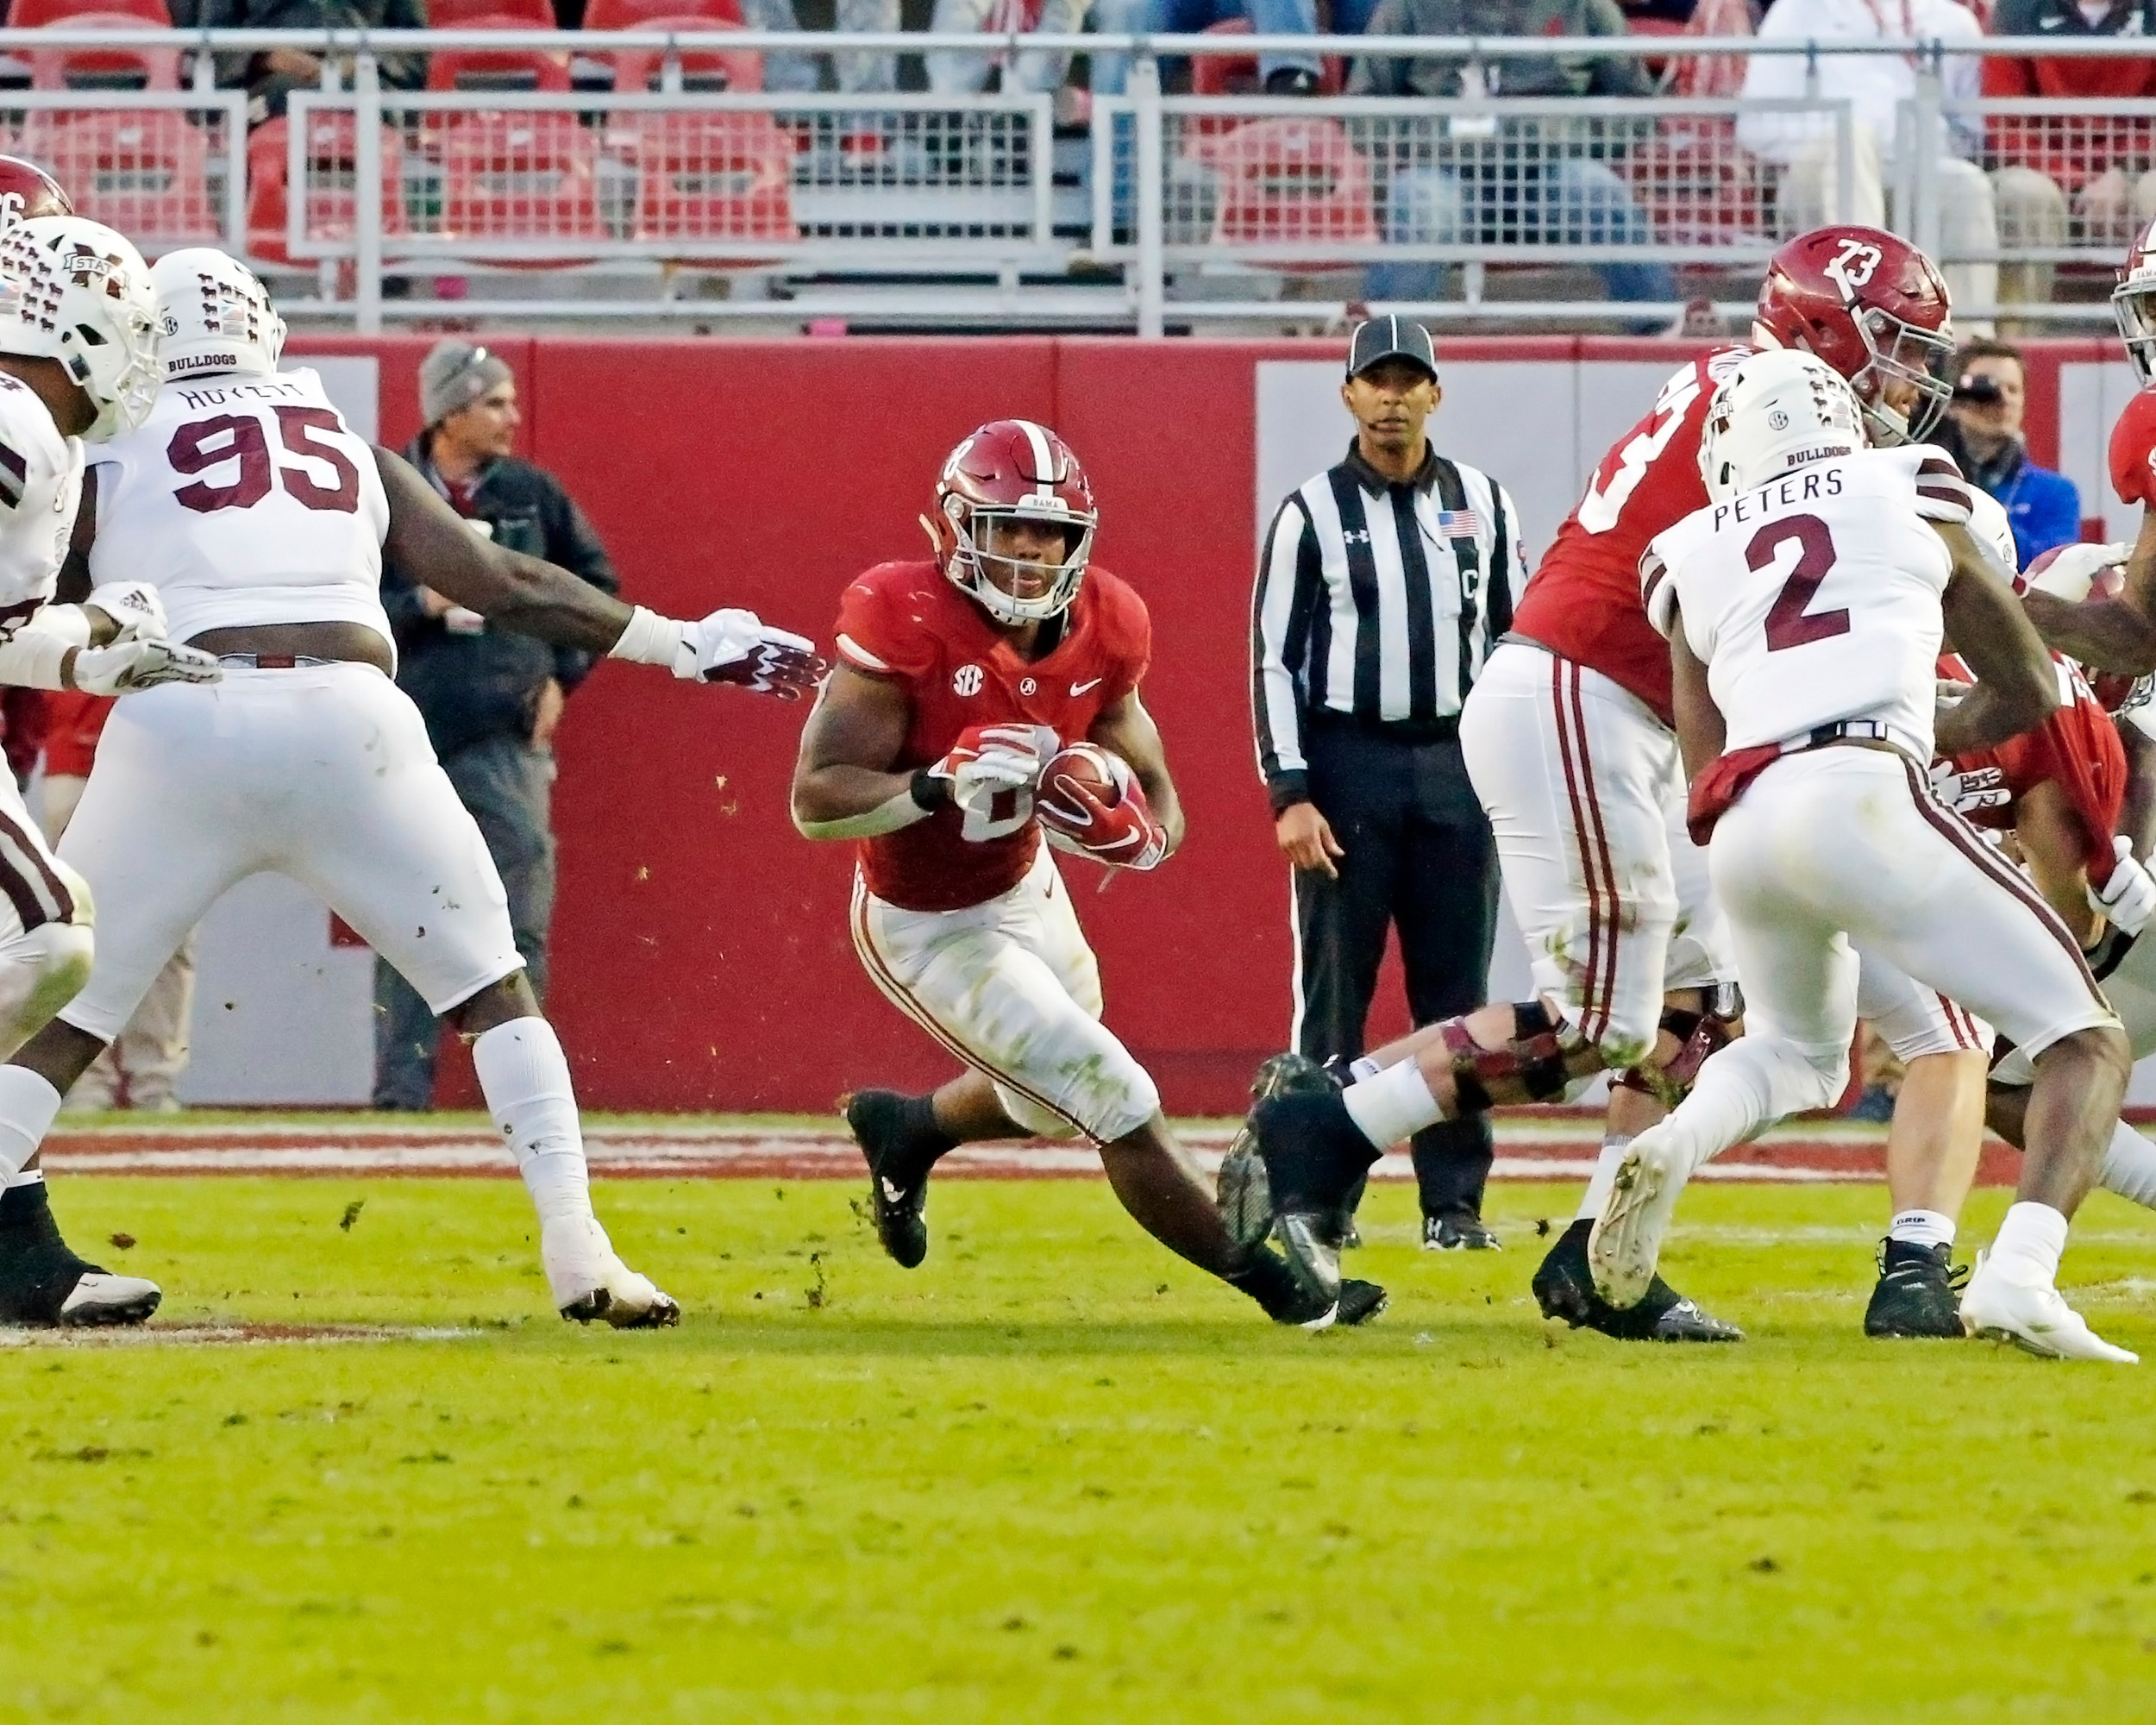 Alabama Crimson Tide running back Josh Jacobs (8) looks for room to run during the second half of the game between Mississippi State and the University of Alabama at Bryant-Denny Stadium in Tuscaloosa, Al. Credit: Jason Clark / Daily Mountain Eagle